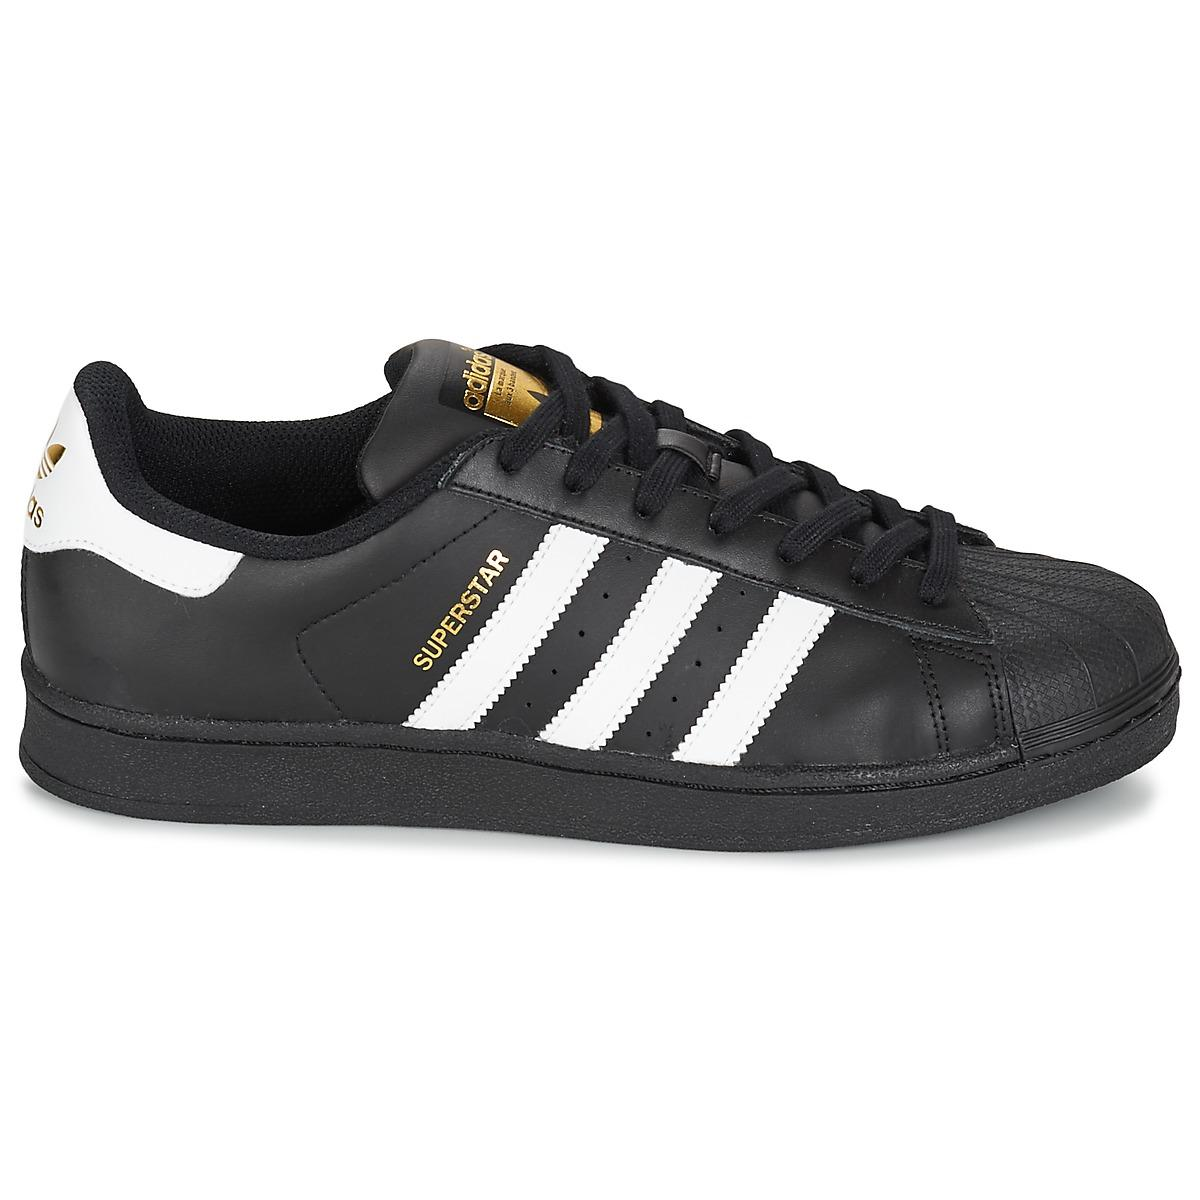 5e78fcac84 Adidas - Superstar Foundation Women's Shoes (trainers) In Black - Lyst.  View fullscreen